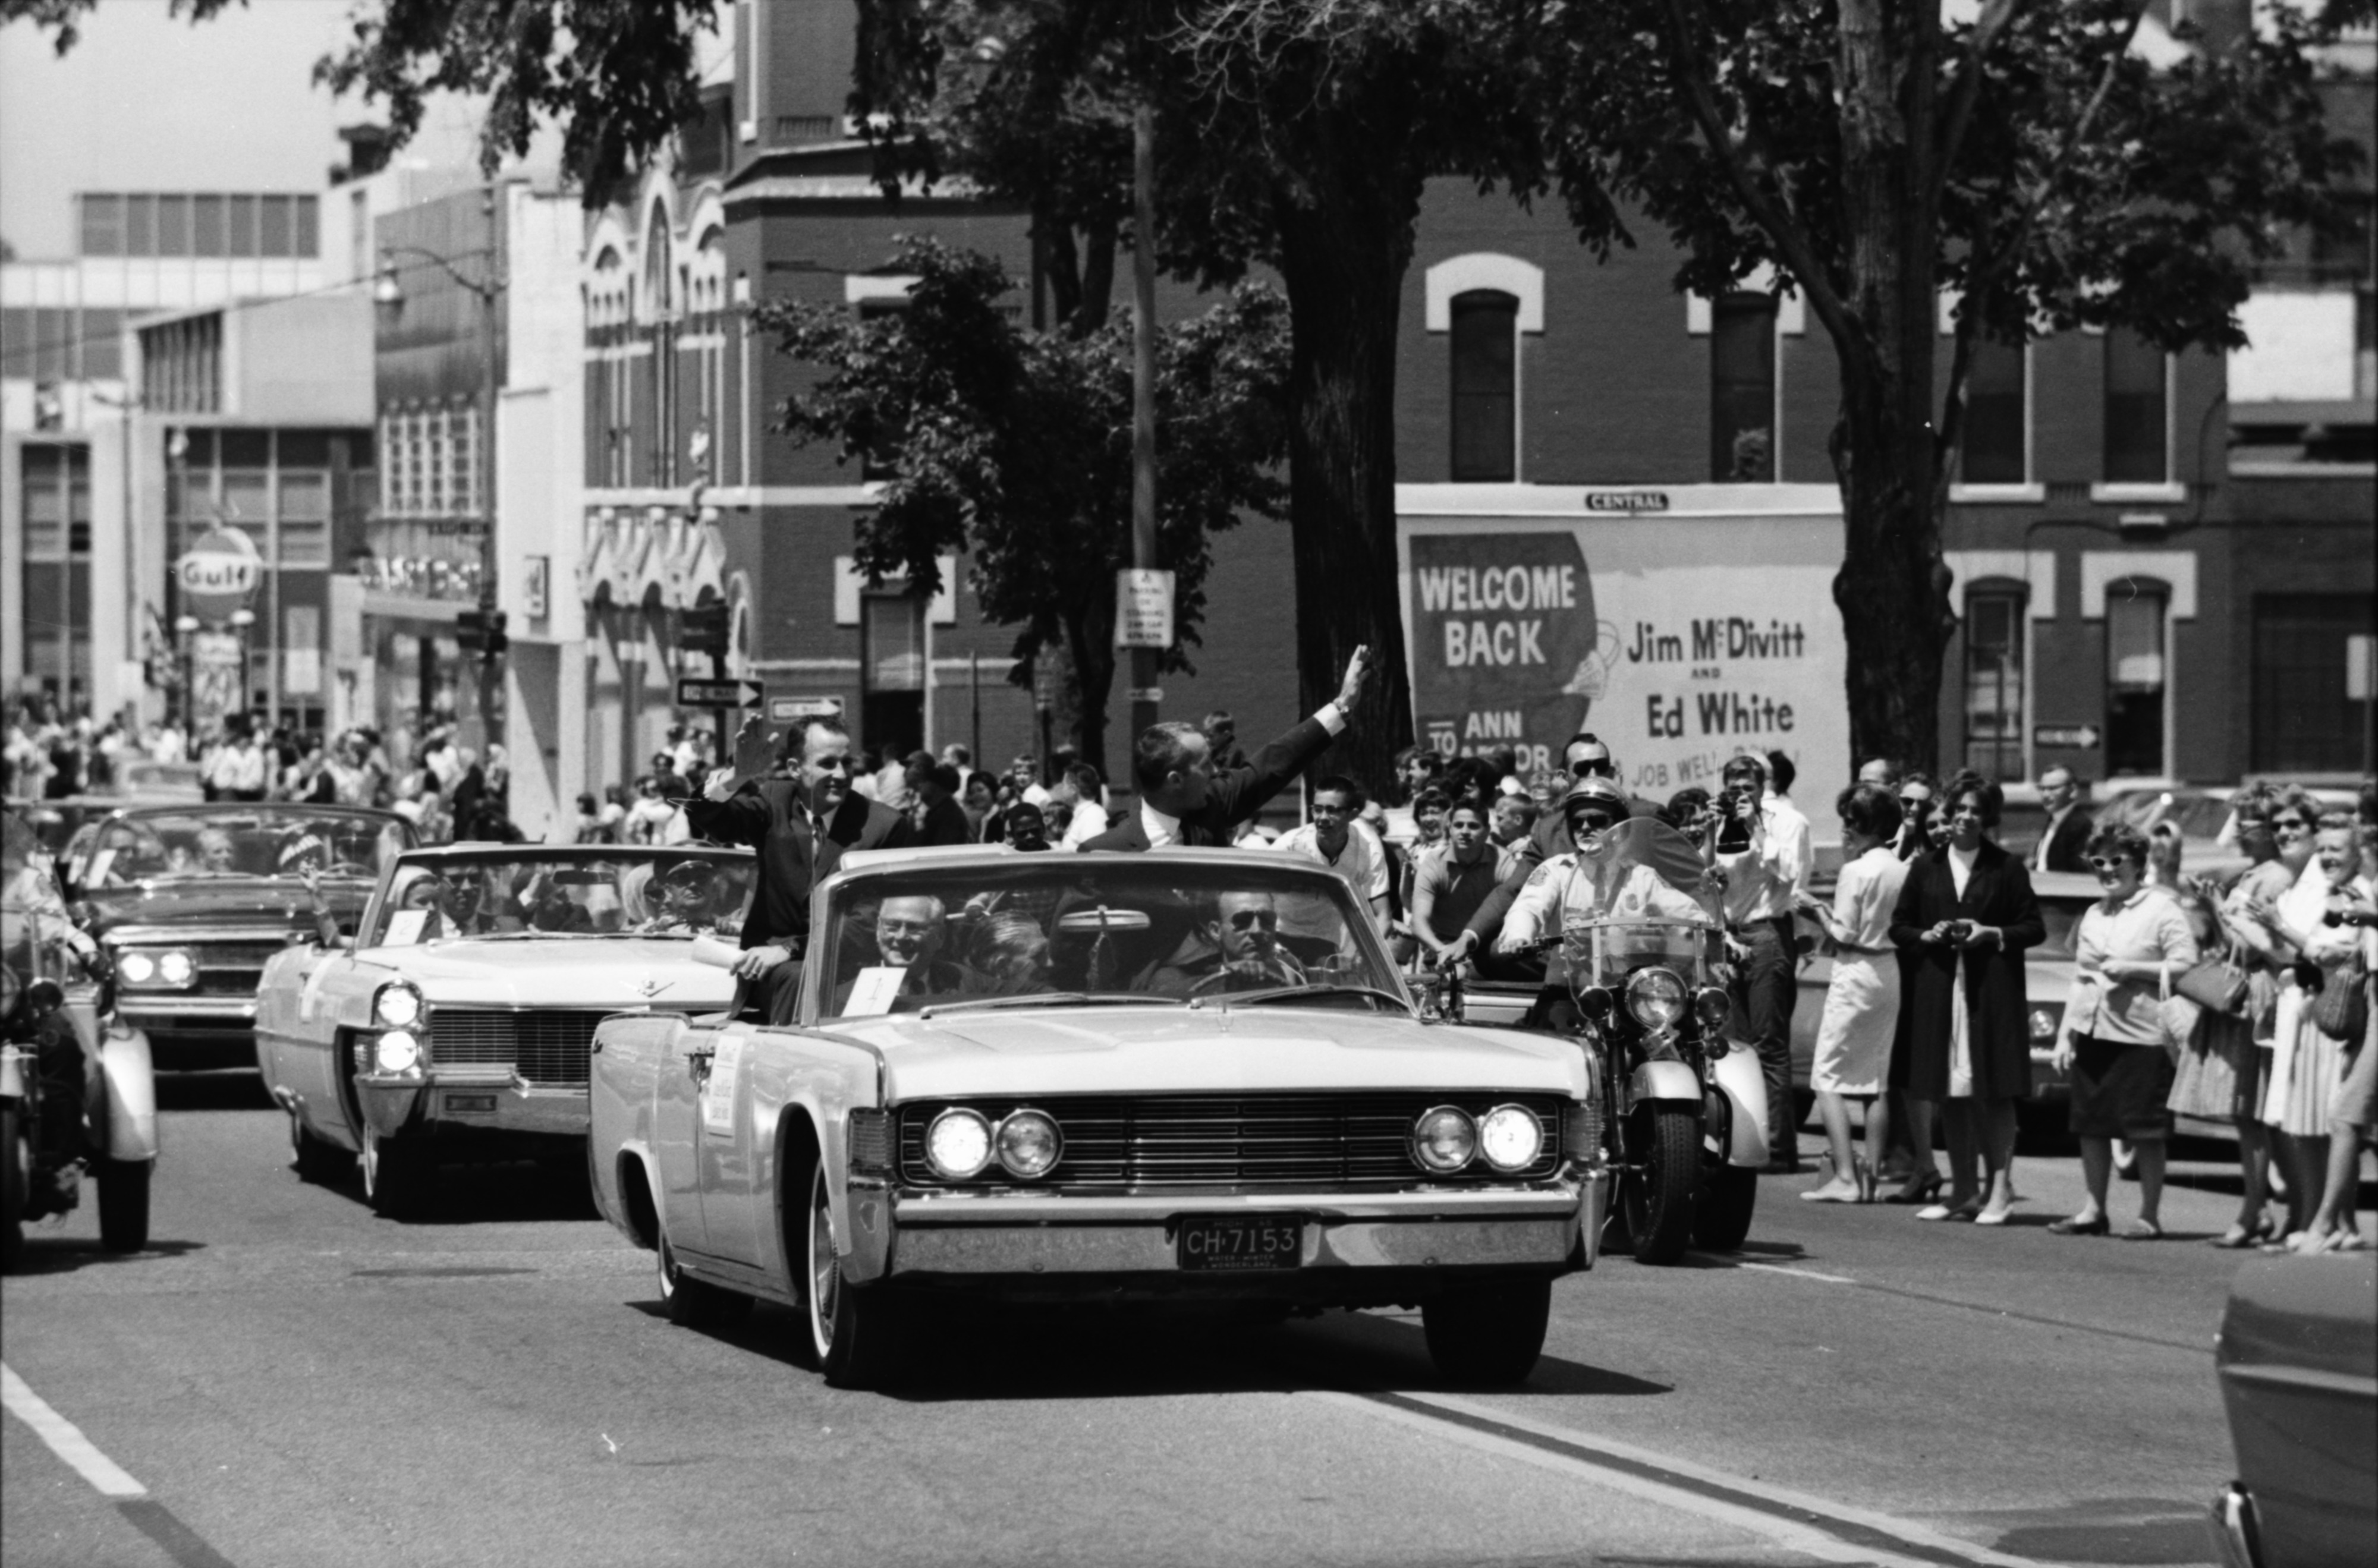 Astronauts James A. McDivitt and Edward H. White II in Motorcade through Ann Arbor, June 1965 image